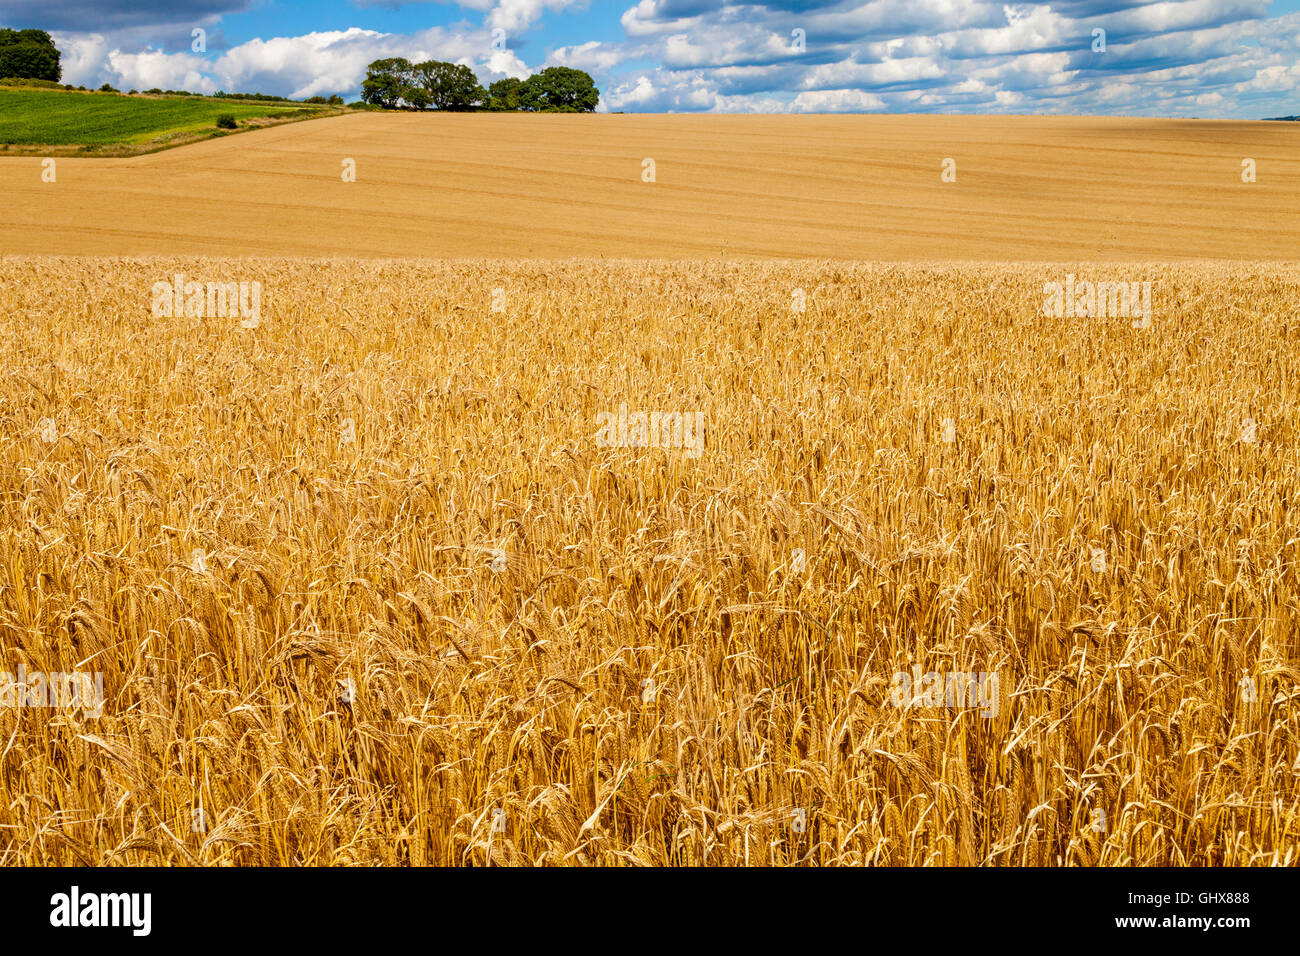 Field Of Wheat, Glynde, East Sussex, UK - Stock Image